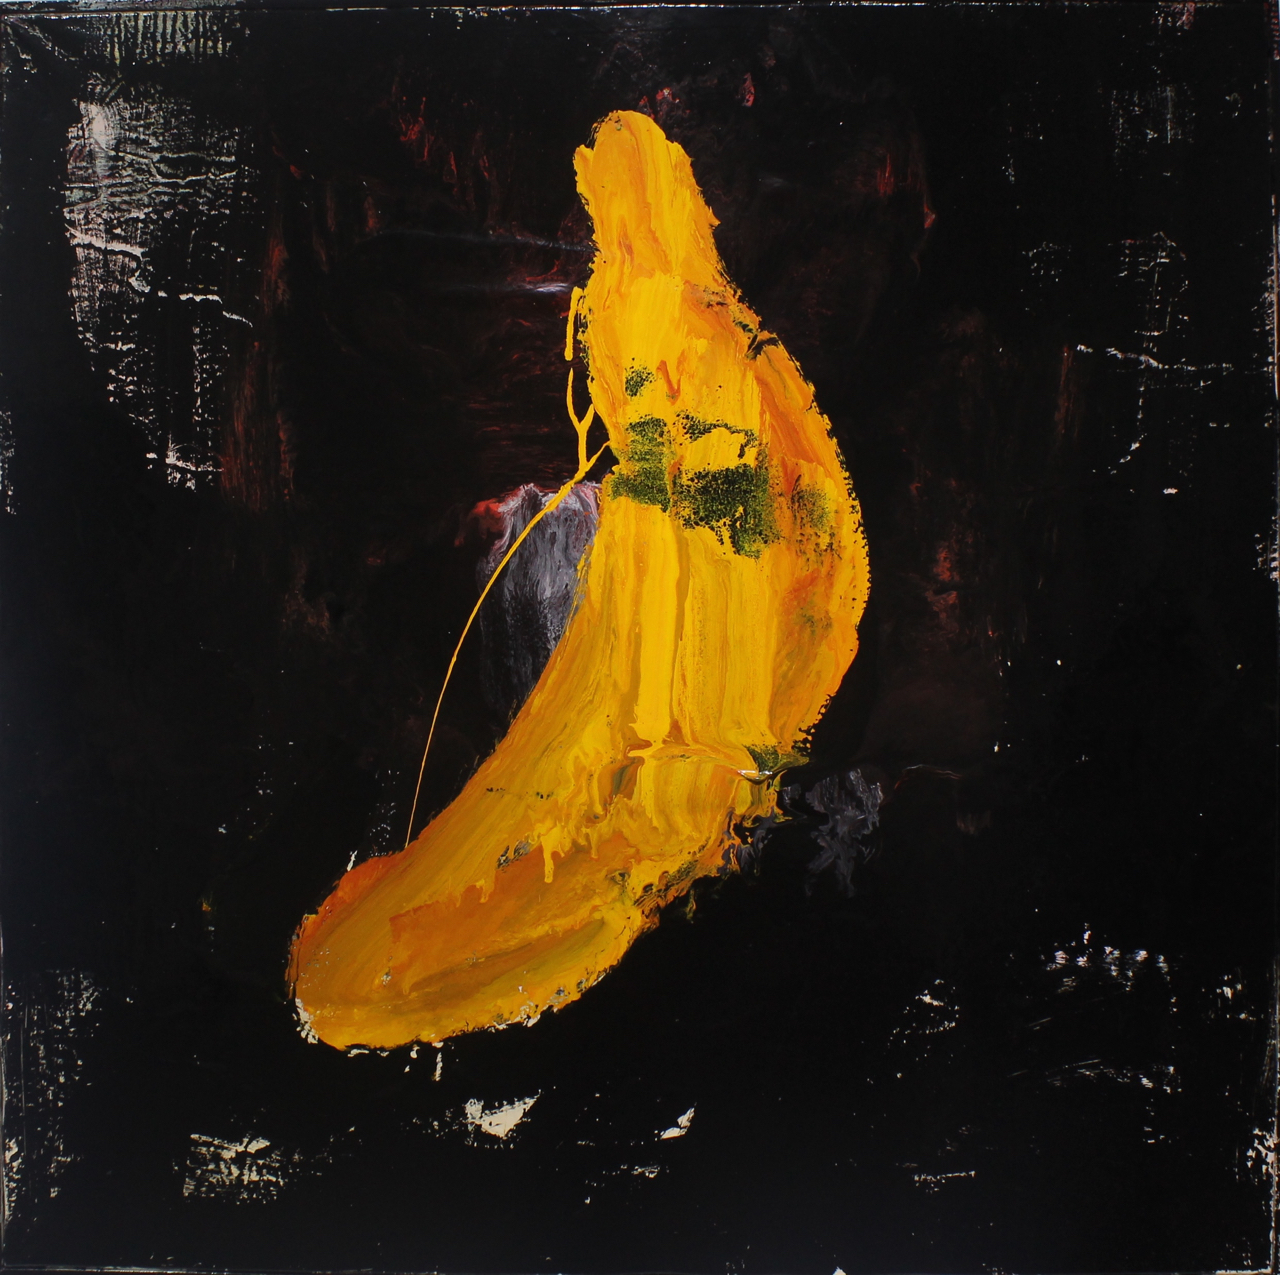 The banana, 2014, enamel paint on canvas, 122 x 122 cm